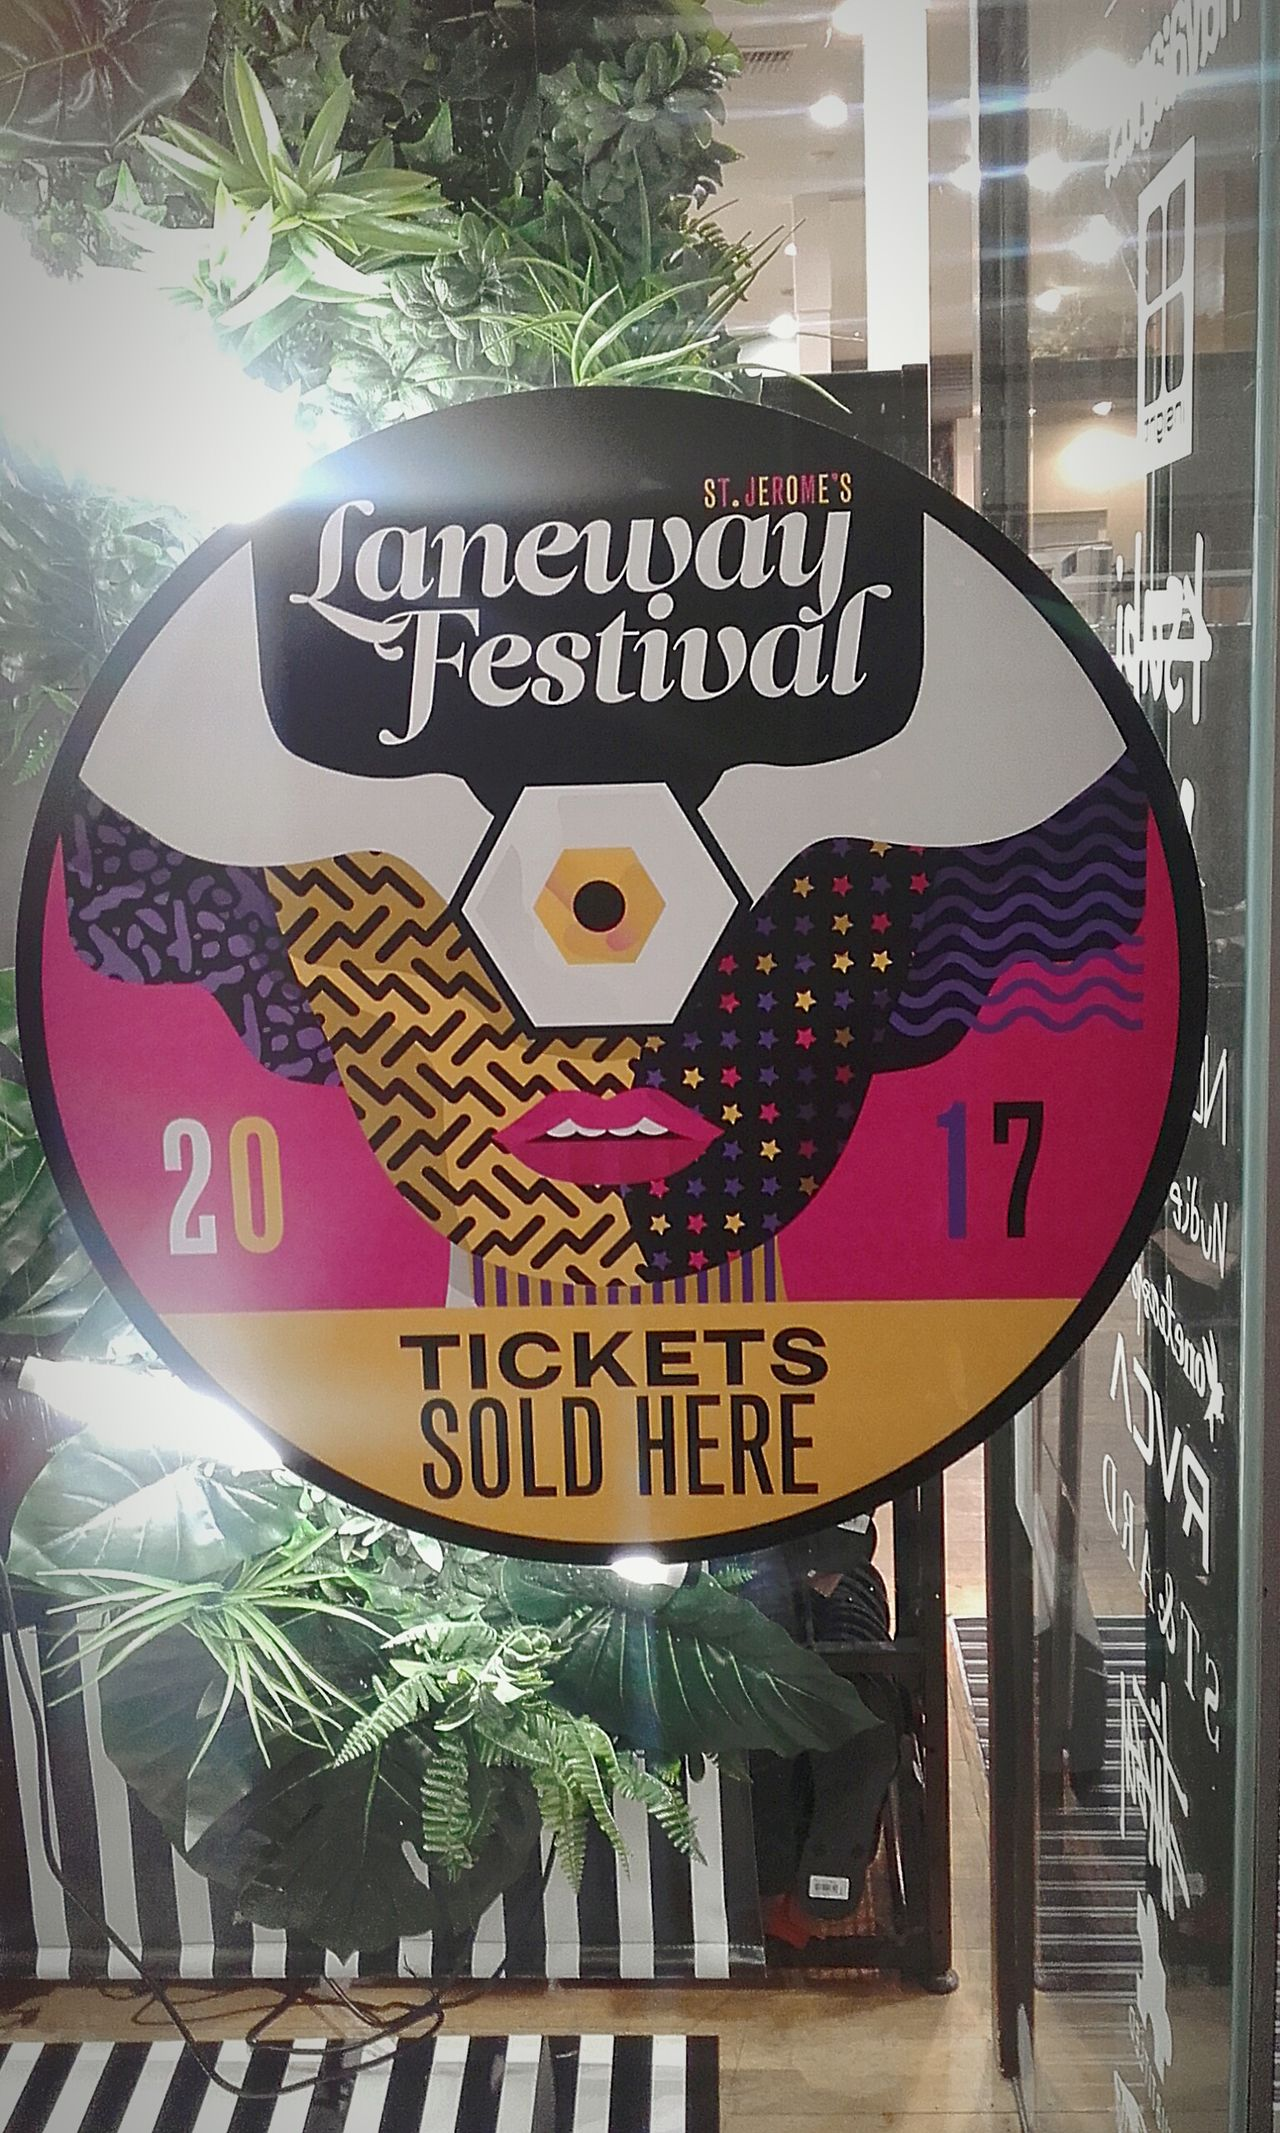 2017 Laneway Festival Laneway Festival  SIGN. Signs, Signs, & More Signs Signs_collection Signage Signporn Signs & More Signs Notices Signs Notice Sign Festivals LanewayFestival Signstalkers Sign, Sign, Everywhere A Sign Taking Pictures Advertising Signs Advertising Big Signs SignsSignsAndMoreSigns SIGNS. Signs Signs Everywhere Signs SignSignEverywhereASign Festival